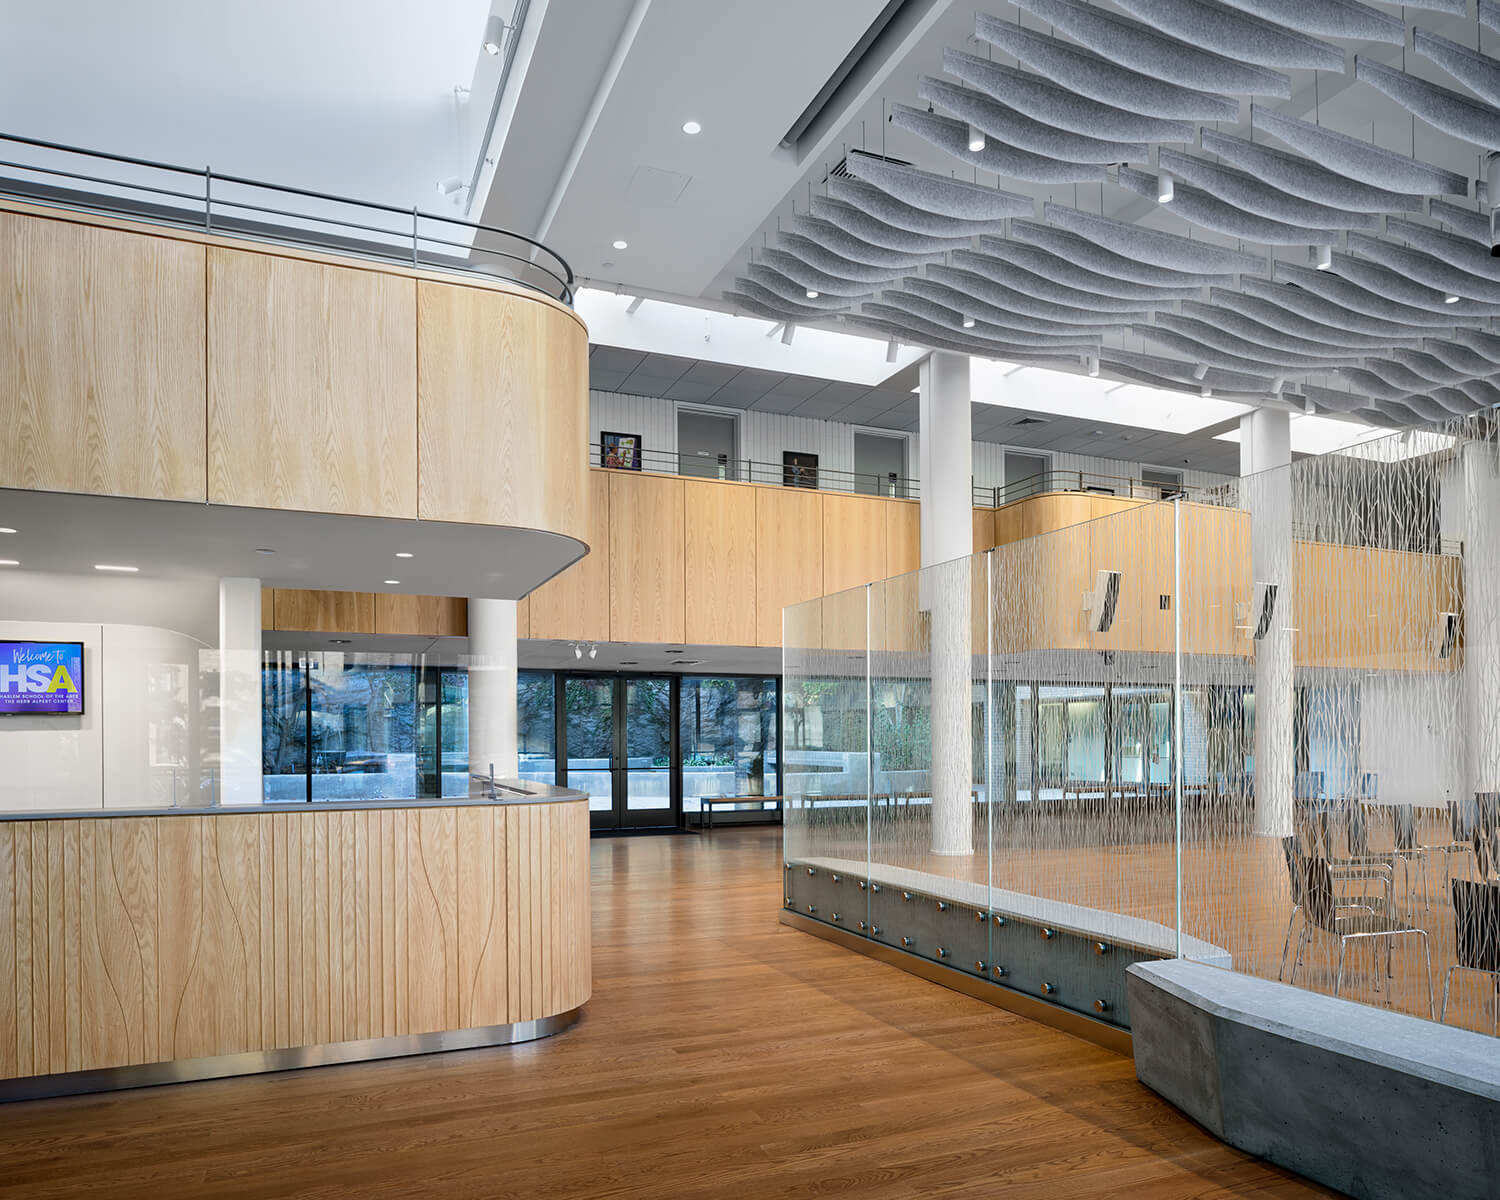 View of the building's atrium, showing the wood-clad security desk.